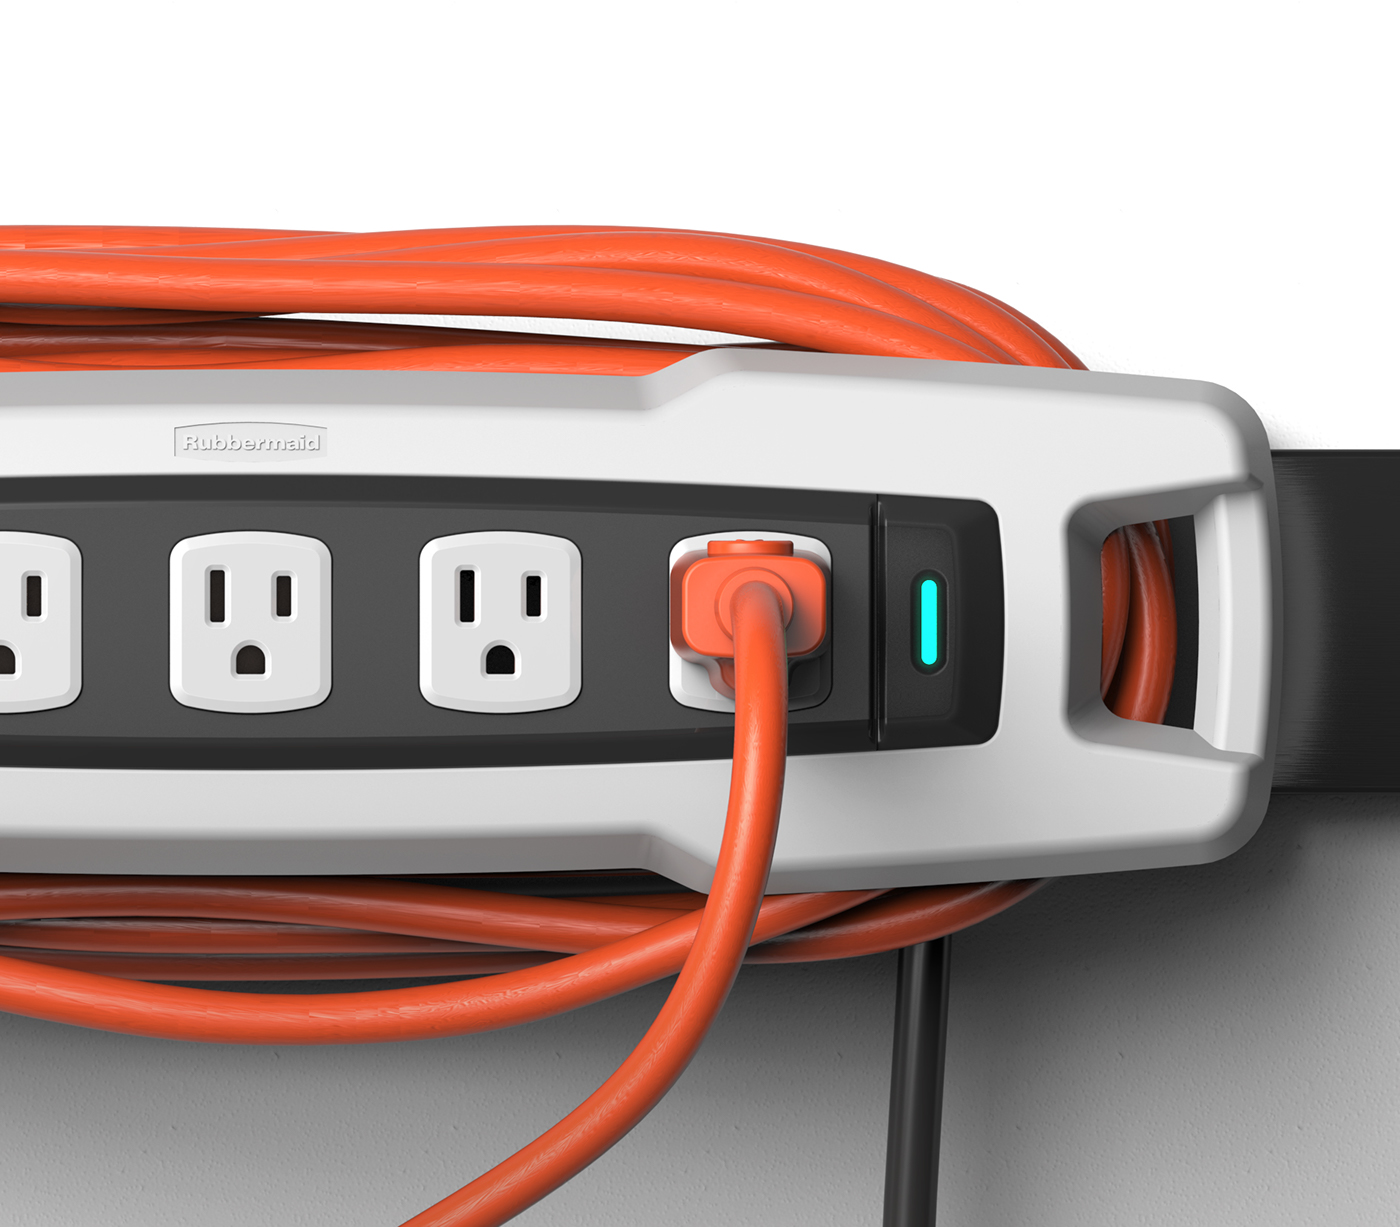 Rubbermaid fasttrack power strip on behance for Rubbermaid fasttrack